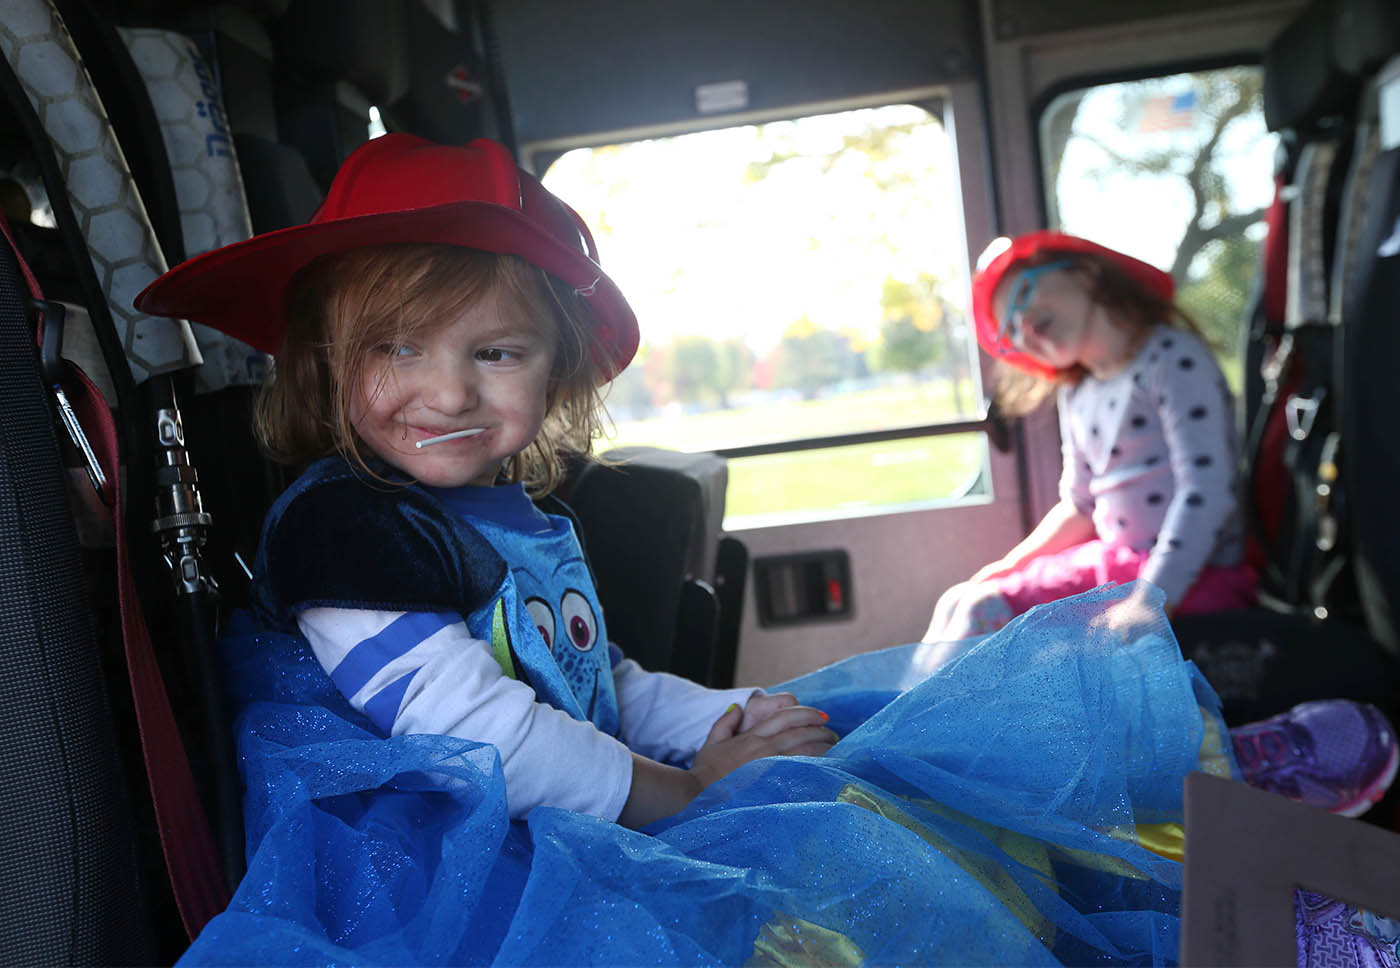 Elmlawn Memorial Park in the Town of Tonawanda, holds its second annual Family Fall Fest, Sunday, Oct. 16, 2016. The Town of Brighton Volunteer Fire Company has a truck onsite to let kids see the inside and to receive toy fire helmets. Sisters Victoria Goodwin, 3, of Buffalo, left, and Ellie, 4, sit in the seats in the cab of the truck. (Sharon Cantillon/Buffalo News)